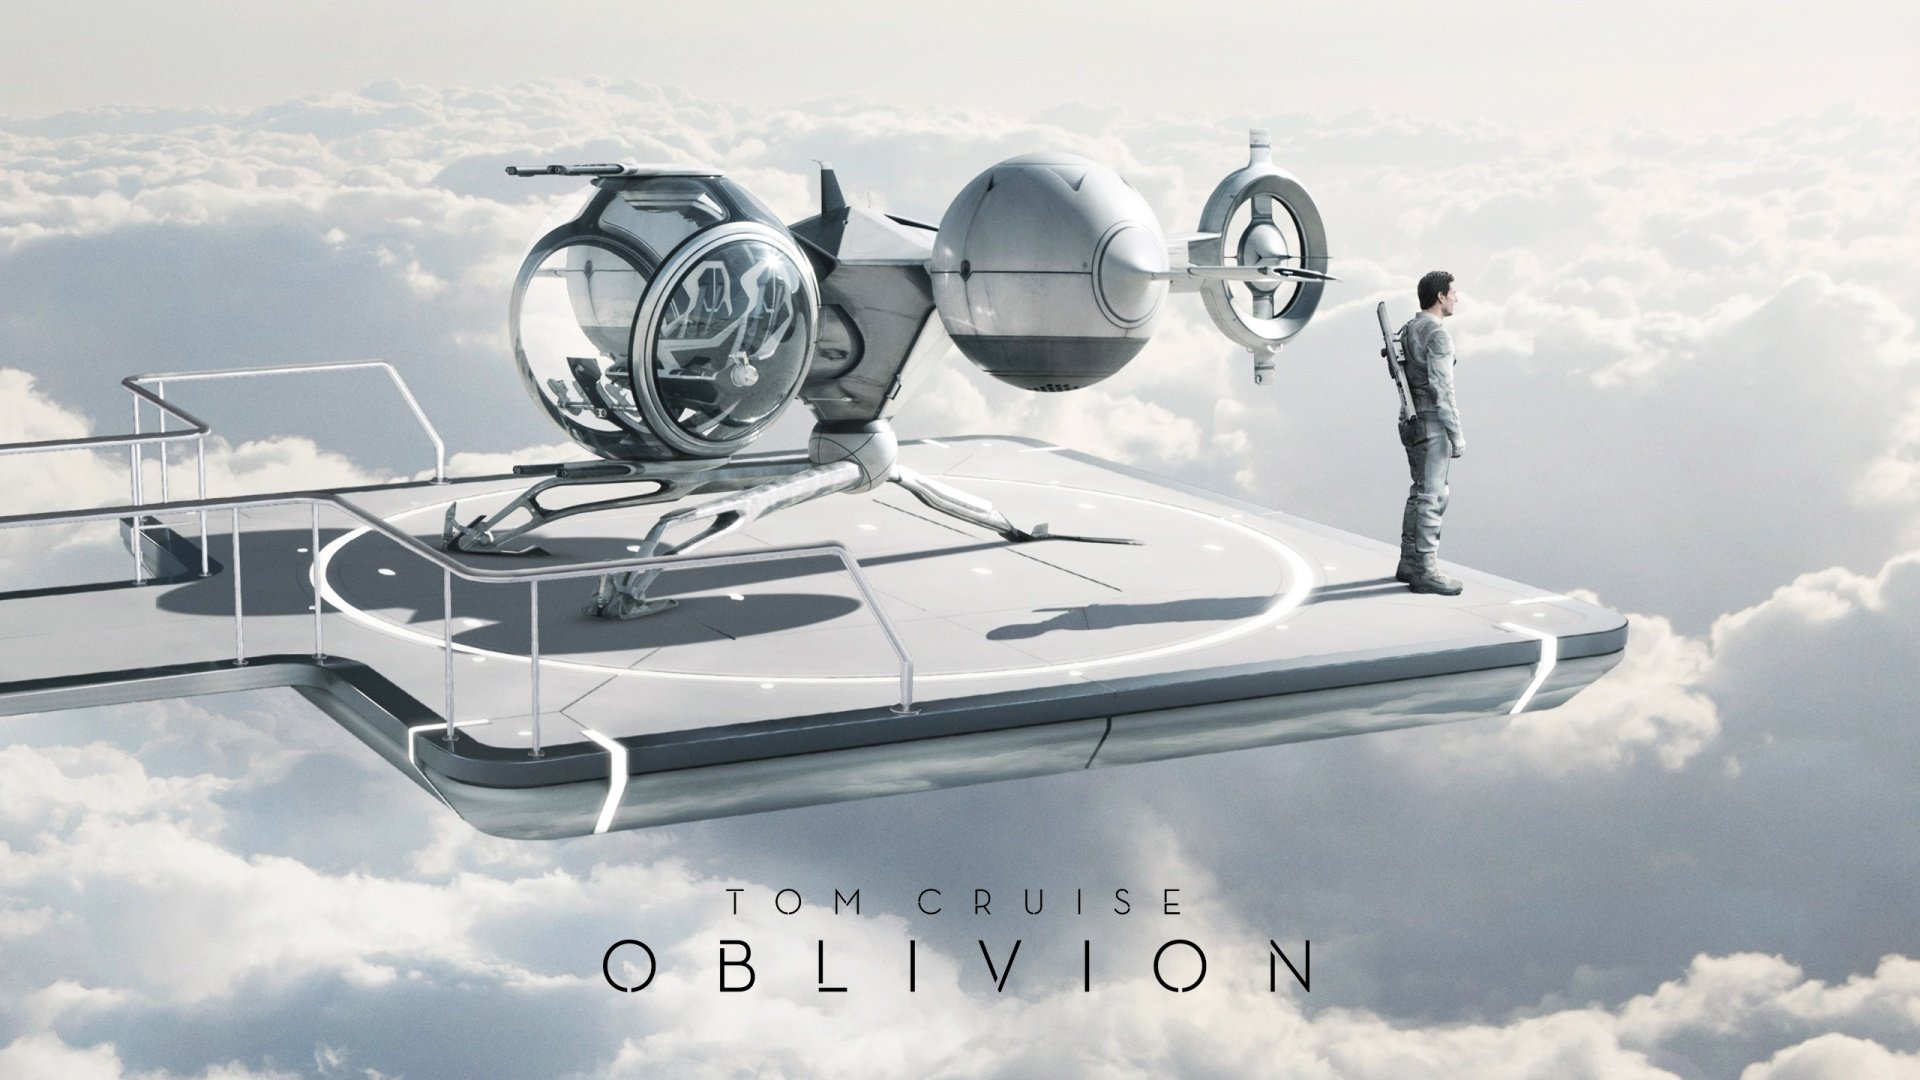 Tom Cruise Oblivion Movie Wallpapers in jpg format for download 1920x1080